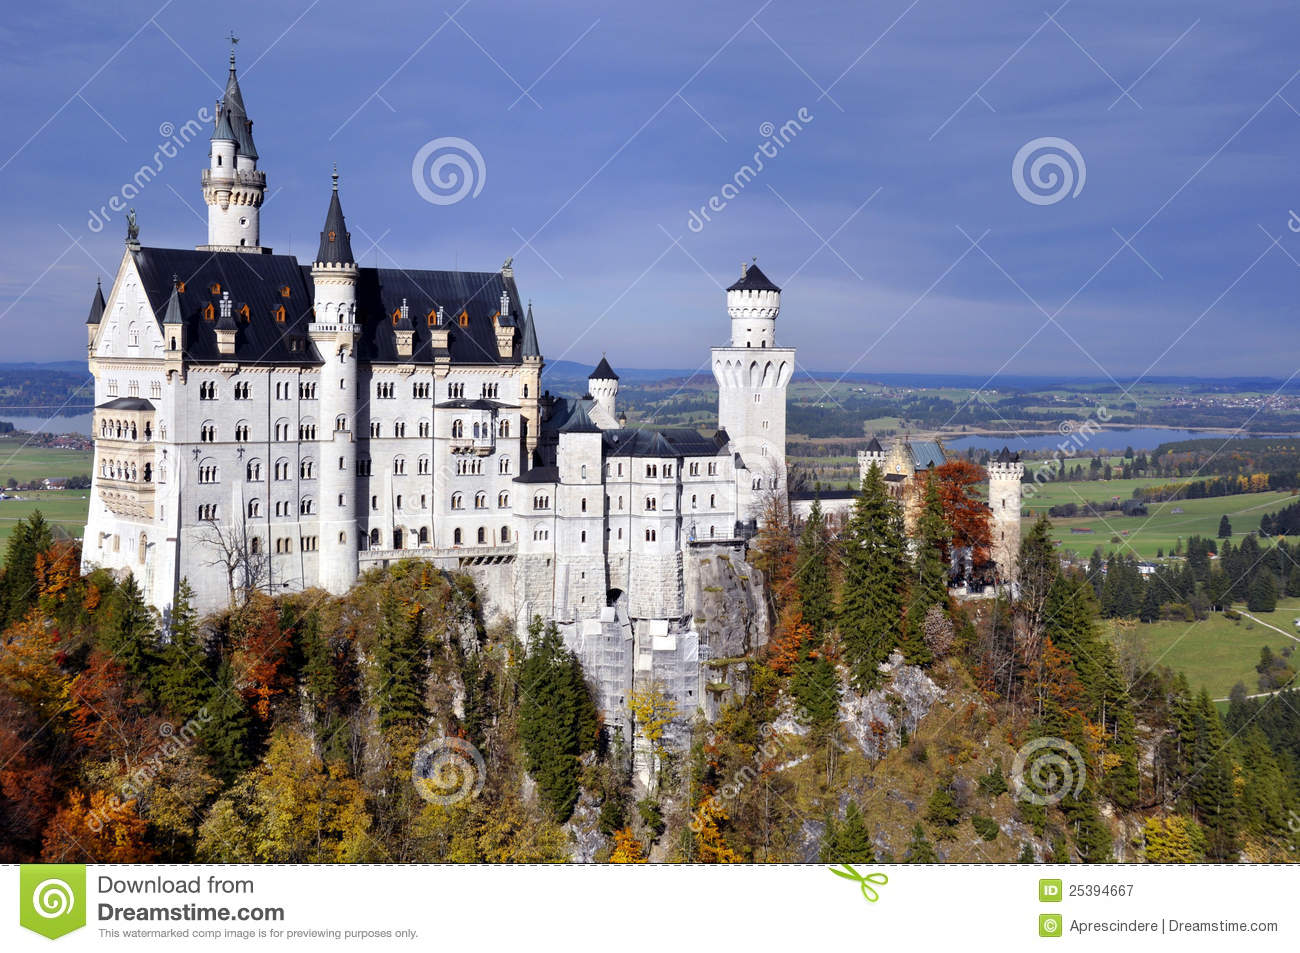 Download Neuschwanstein castle stock image. Image of castle, landmark - 25394667